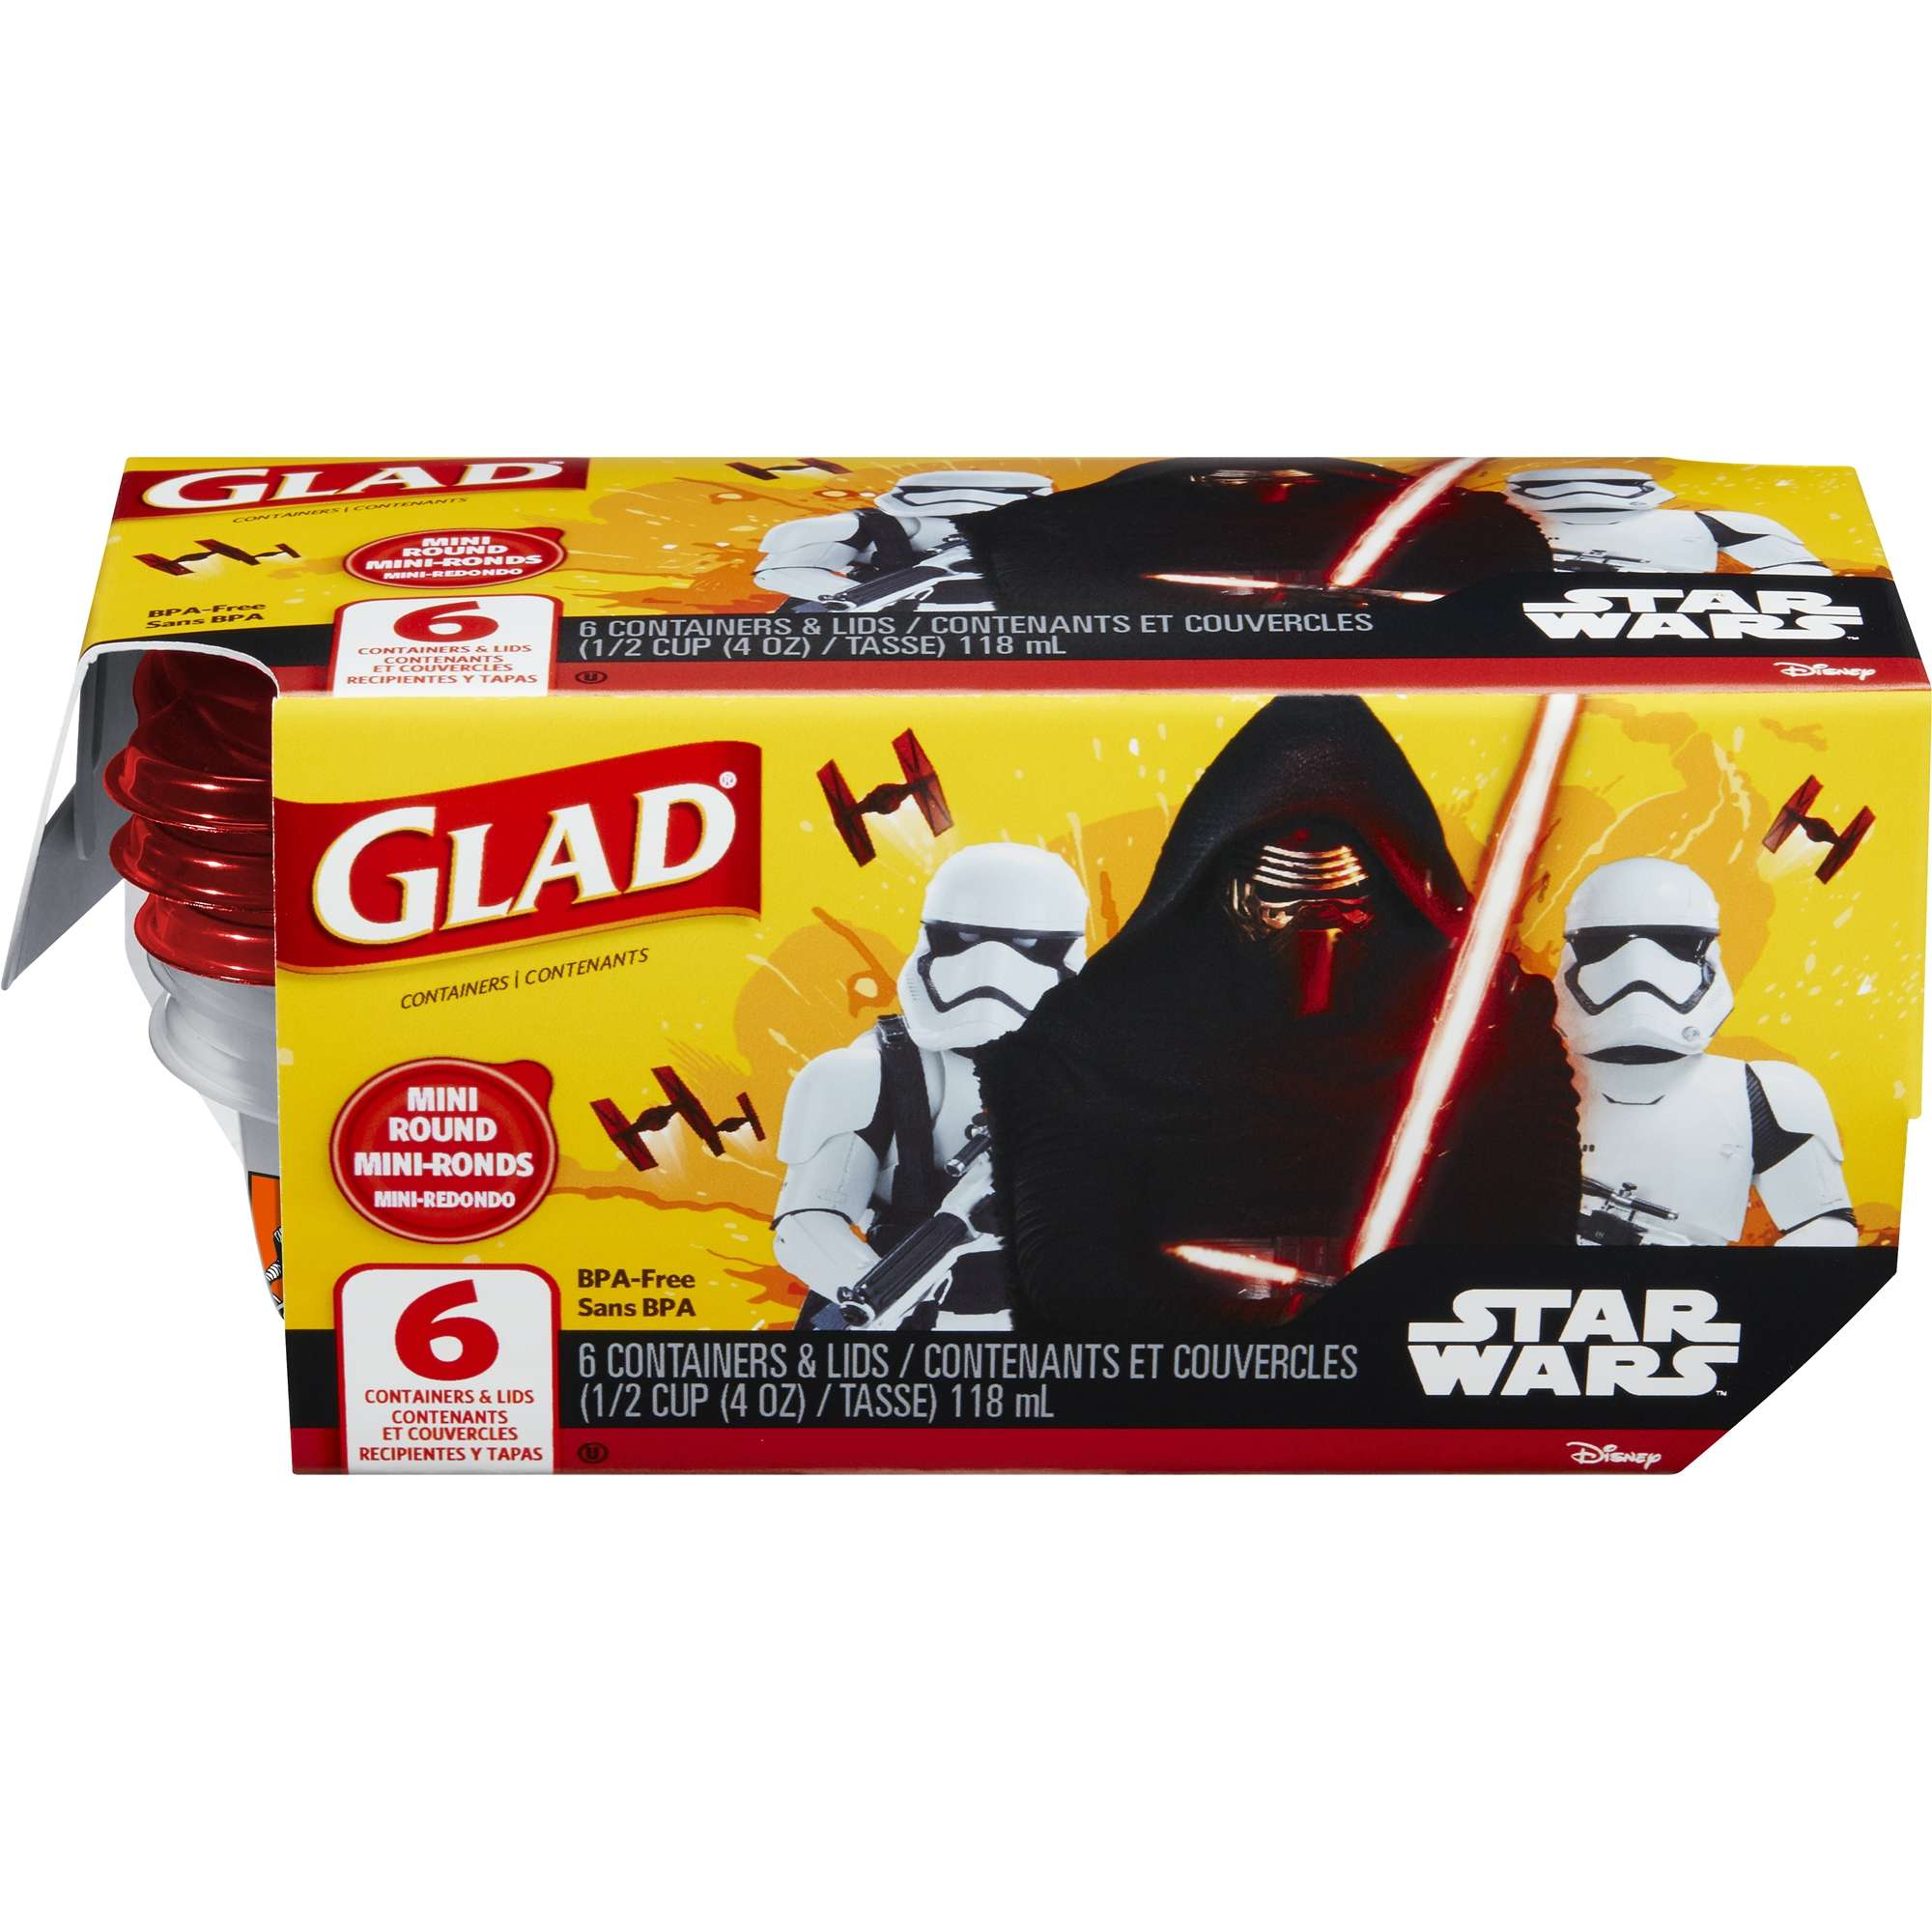 Glad Food Storage Containers - Star Wars Mini Round Containers - 4 oz - 6 ct